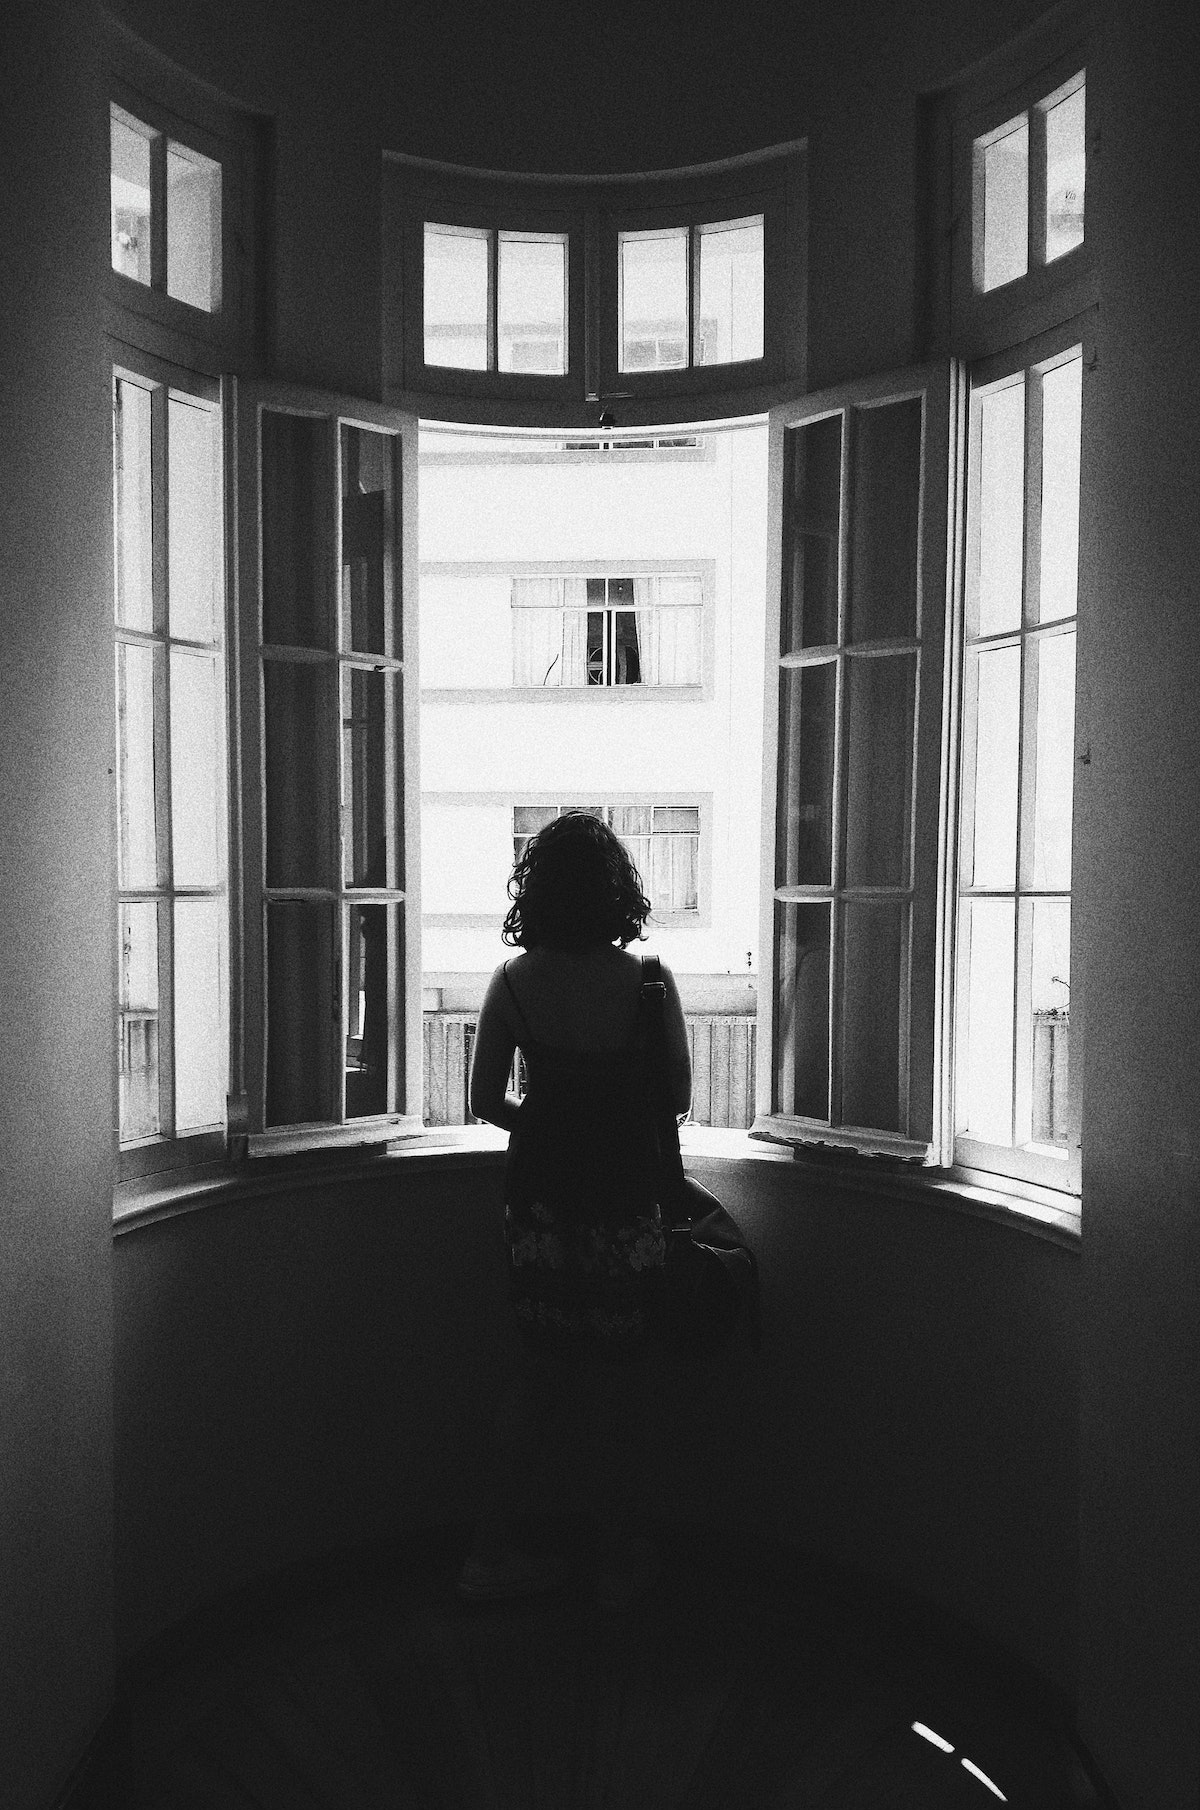 Silhouette of woman staring out apartment window